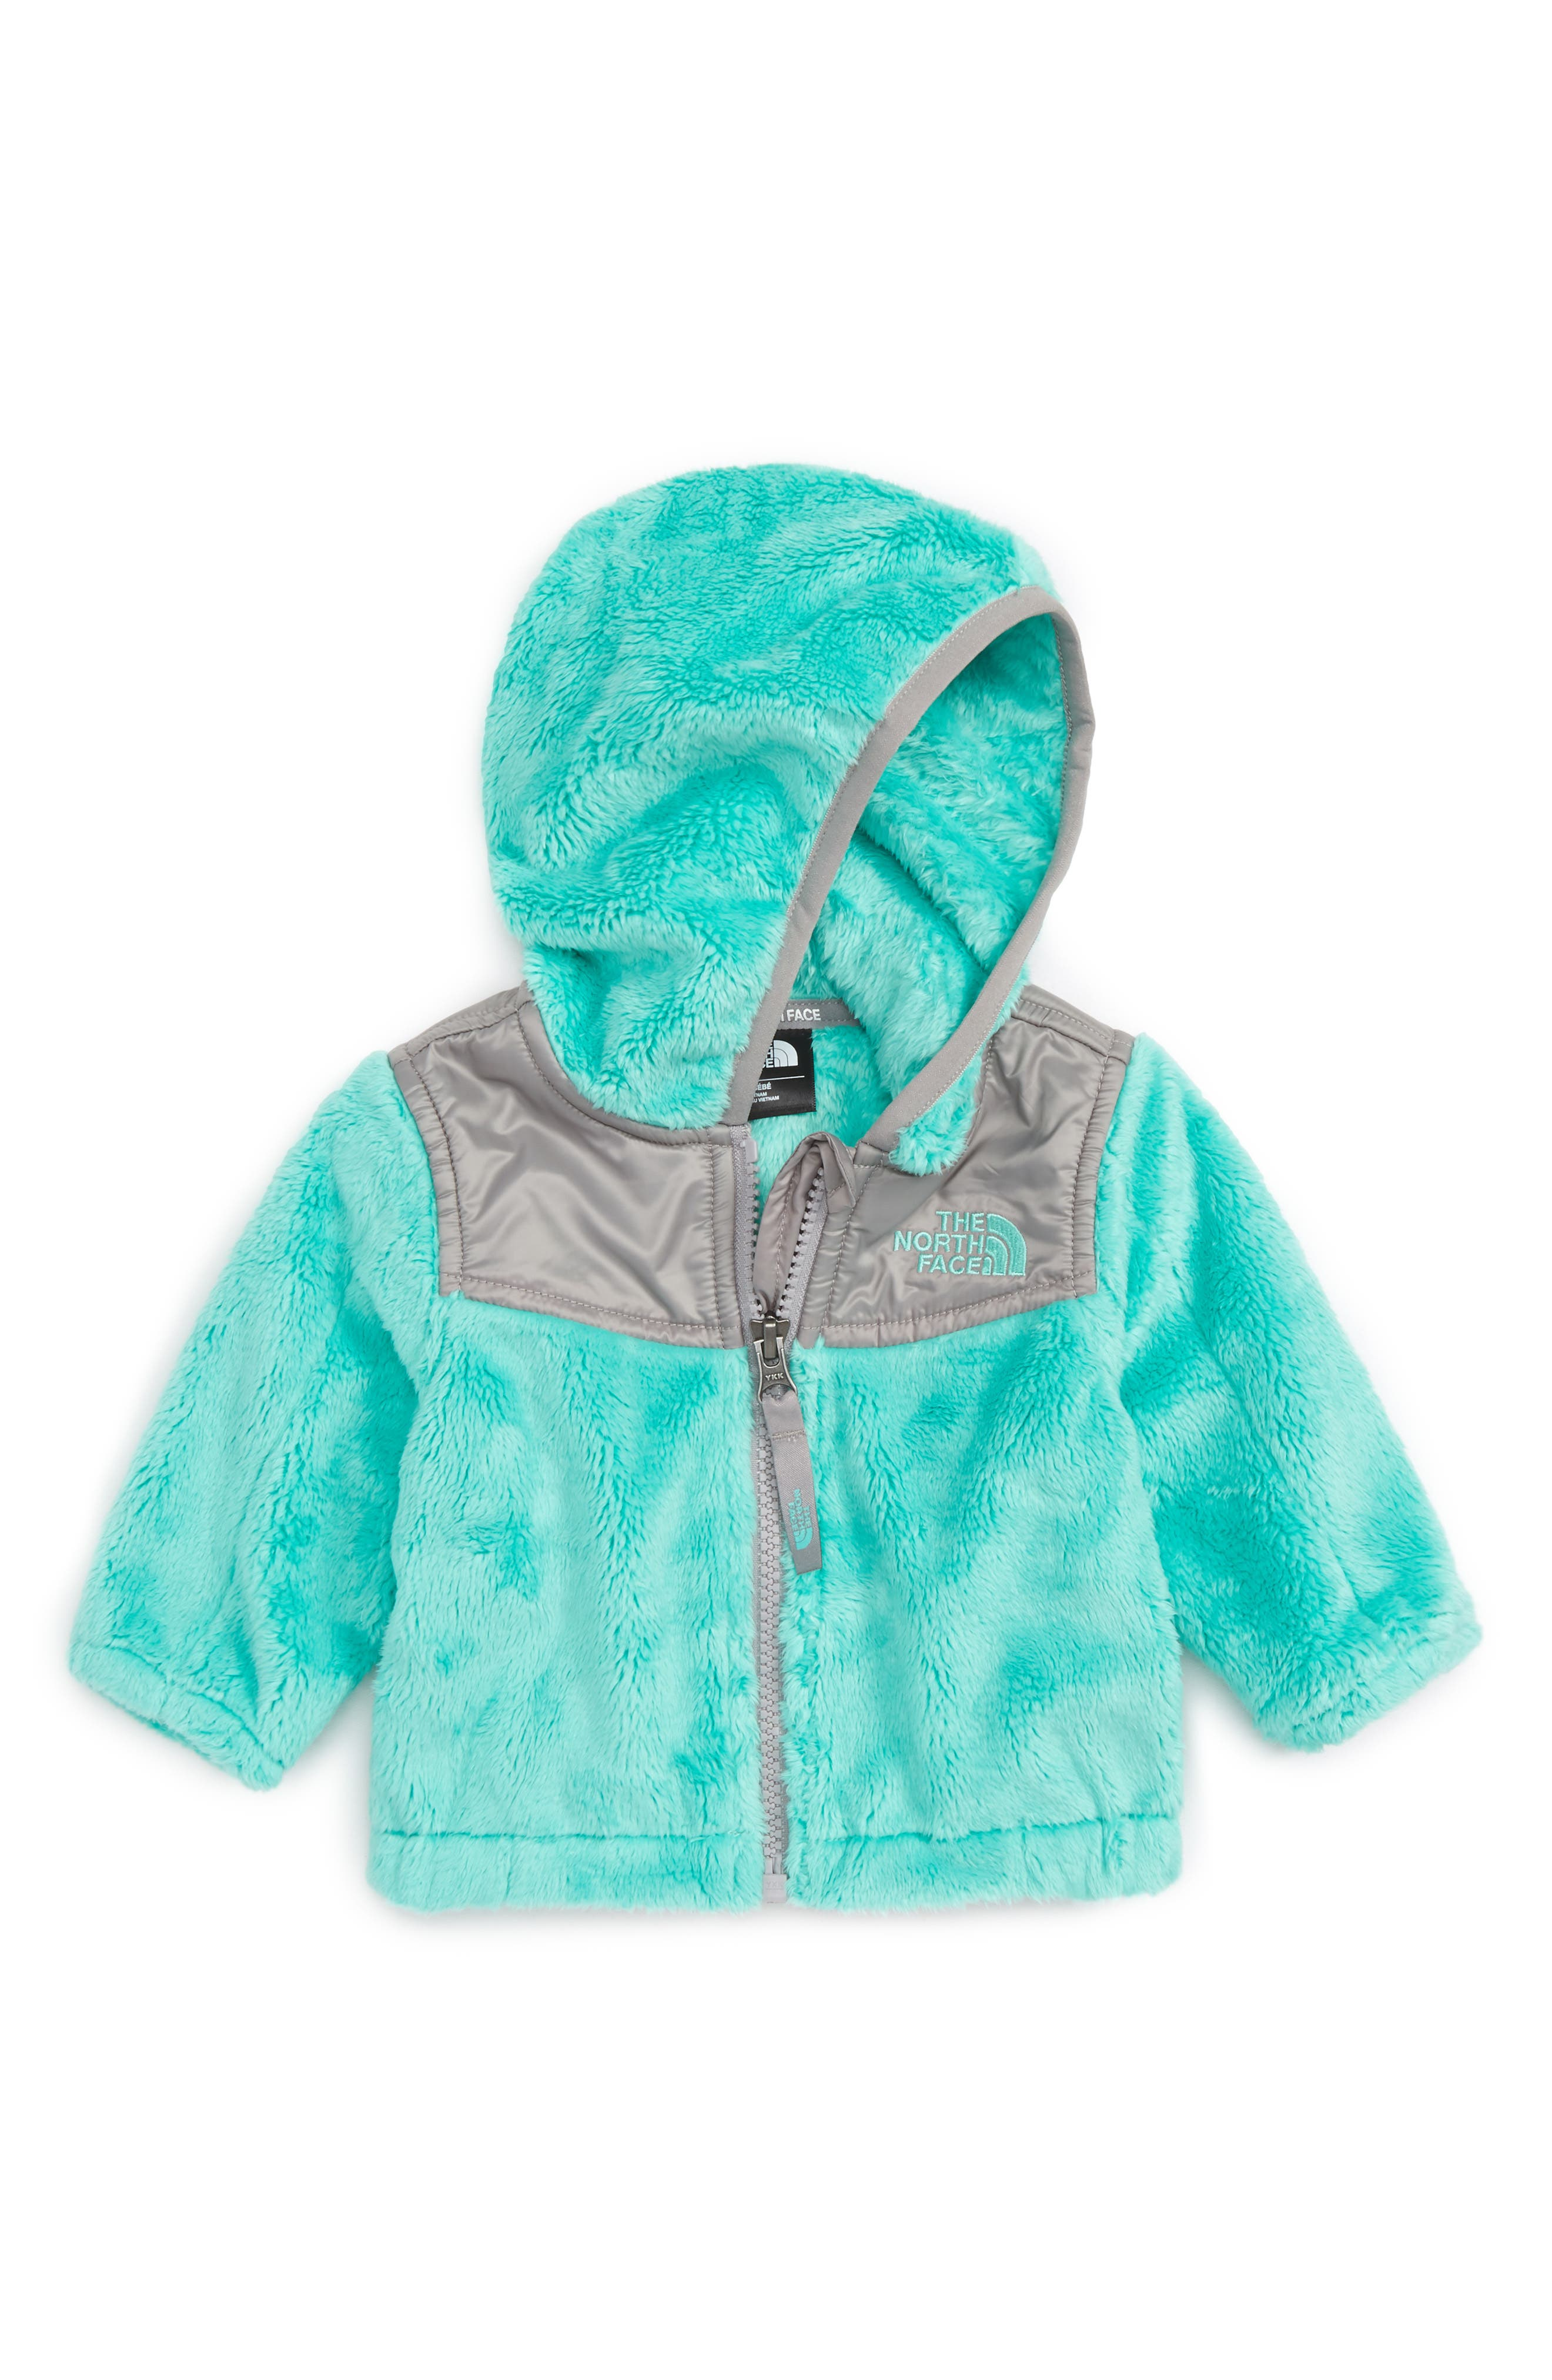 The North Face 'Oso' Fleece Hooded Jacket (Baby Girls)